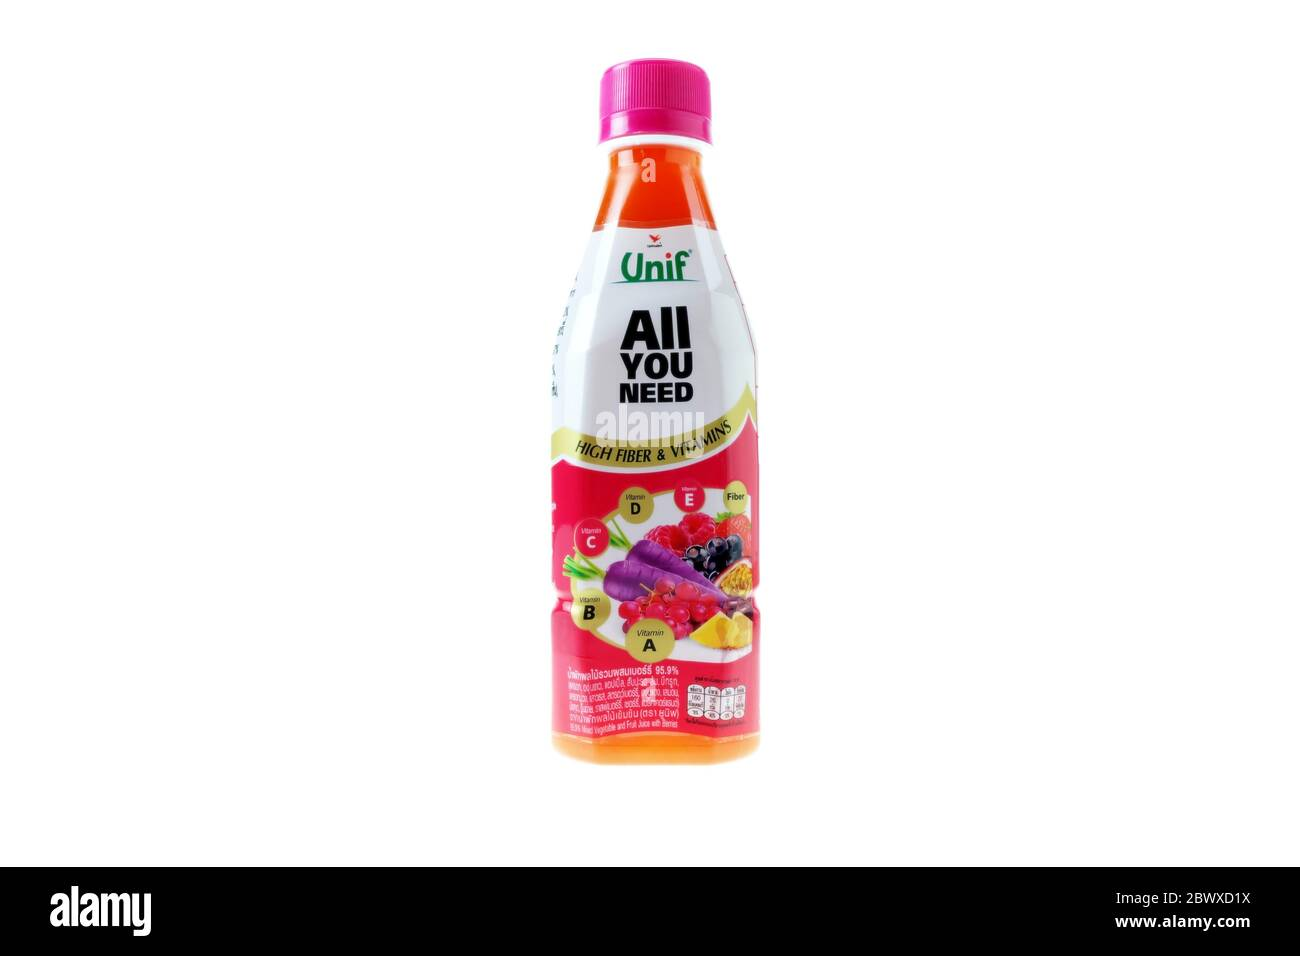 Bangkok Thailand April 22 2020 Unif Brand Mixed Vegetable And Fruit Juice With Berries Distributed By Uni President Thailand Co Ltd That Was E Stock Photo Alamy